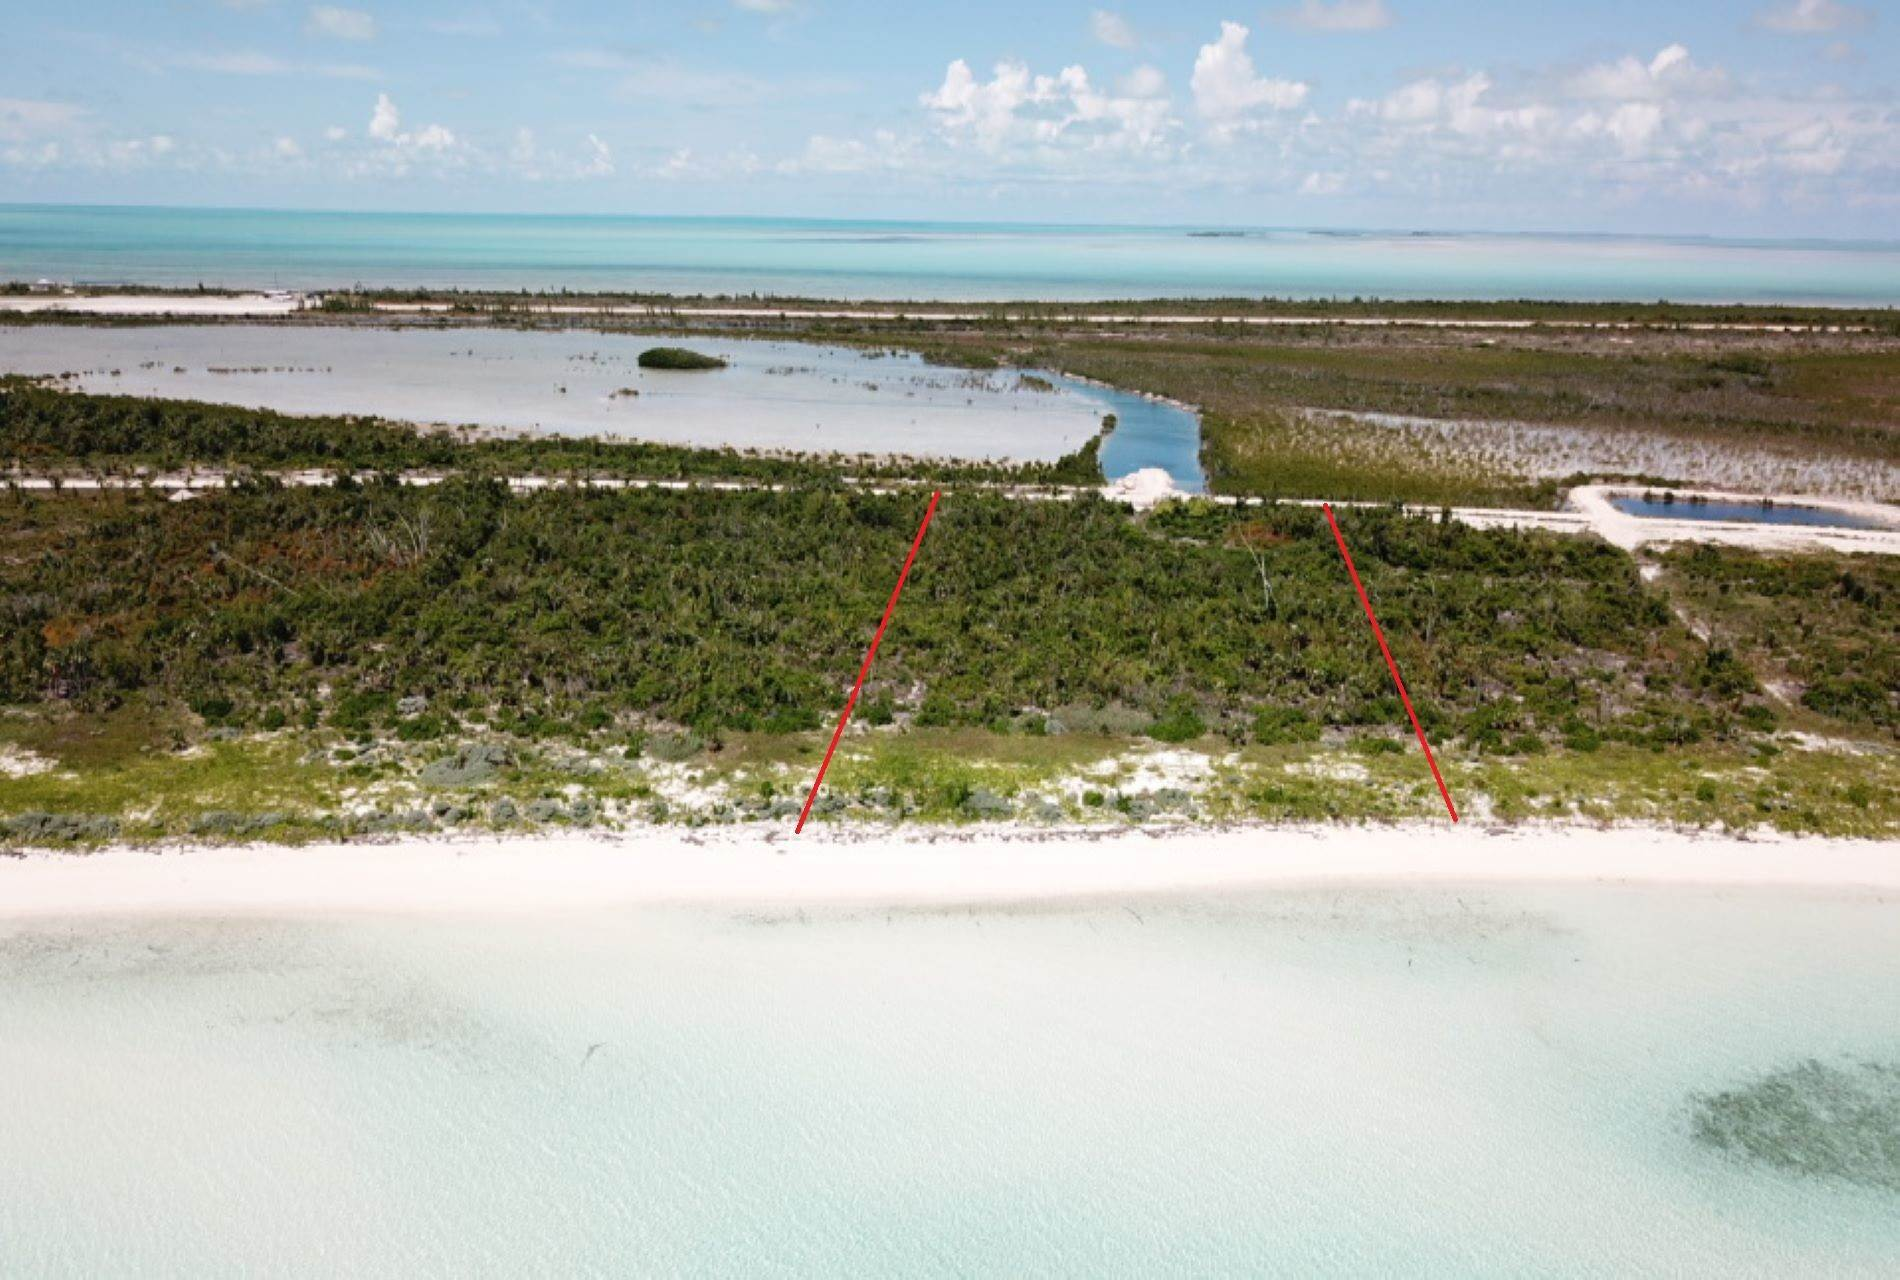 Land for Sale at Lot 29 Chub Cay - MLS 38796 Chub Cay, Berry Islands, Bahamas